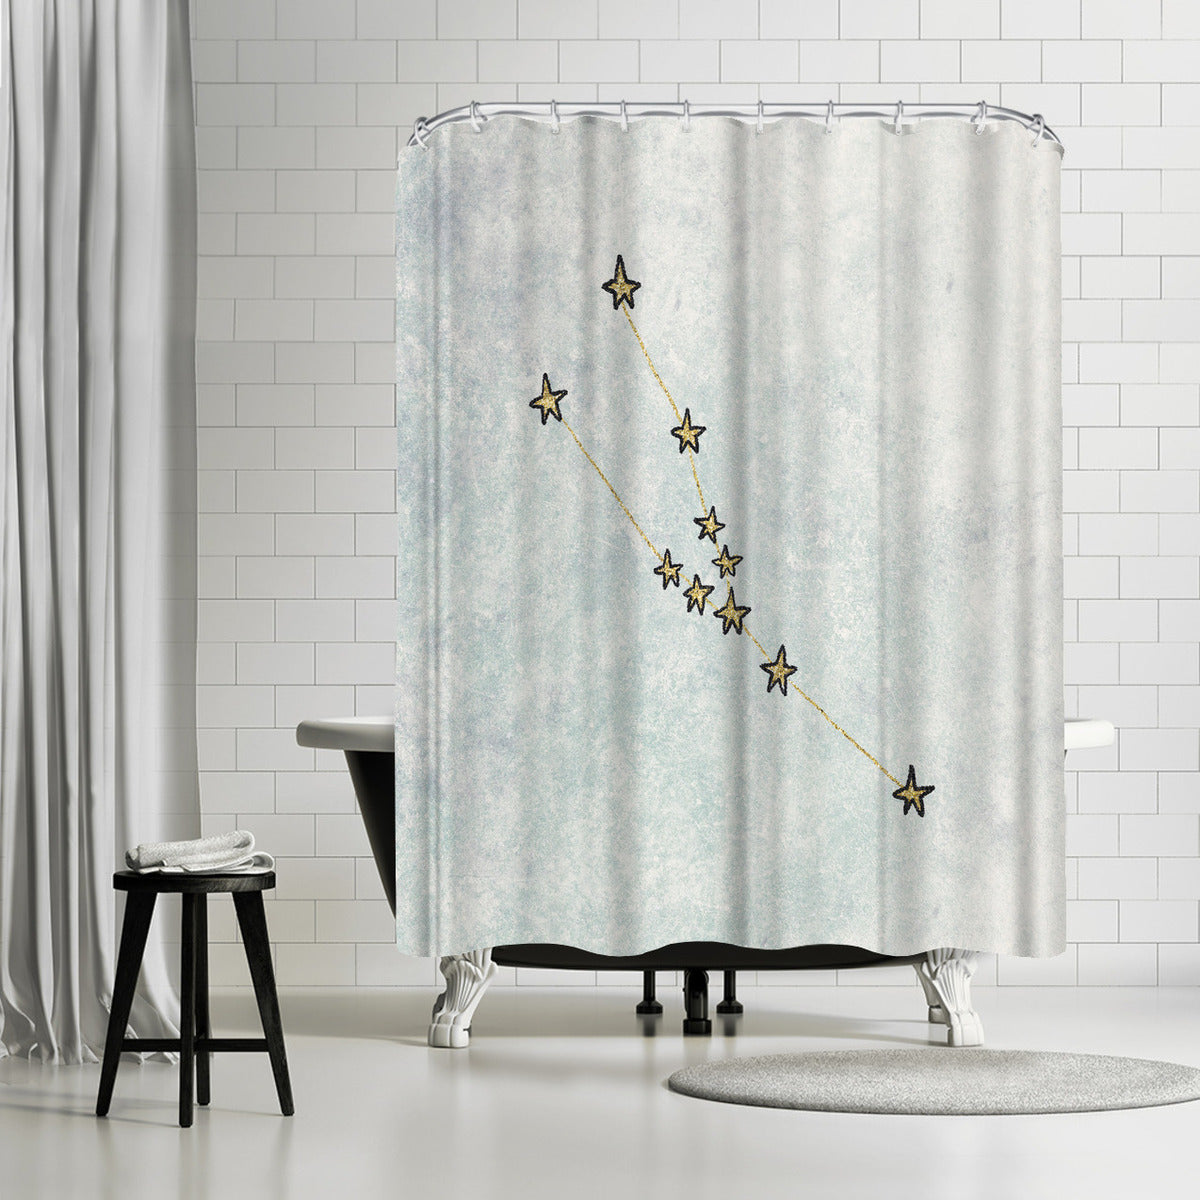 Taurus by Leah Flores Shower Curtain - Shower Curtain - Americanflat